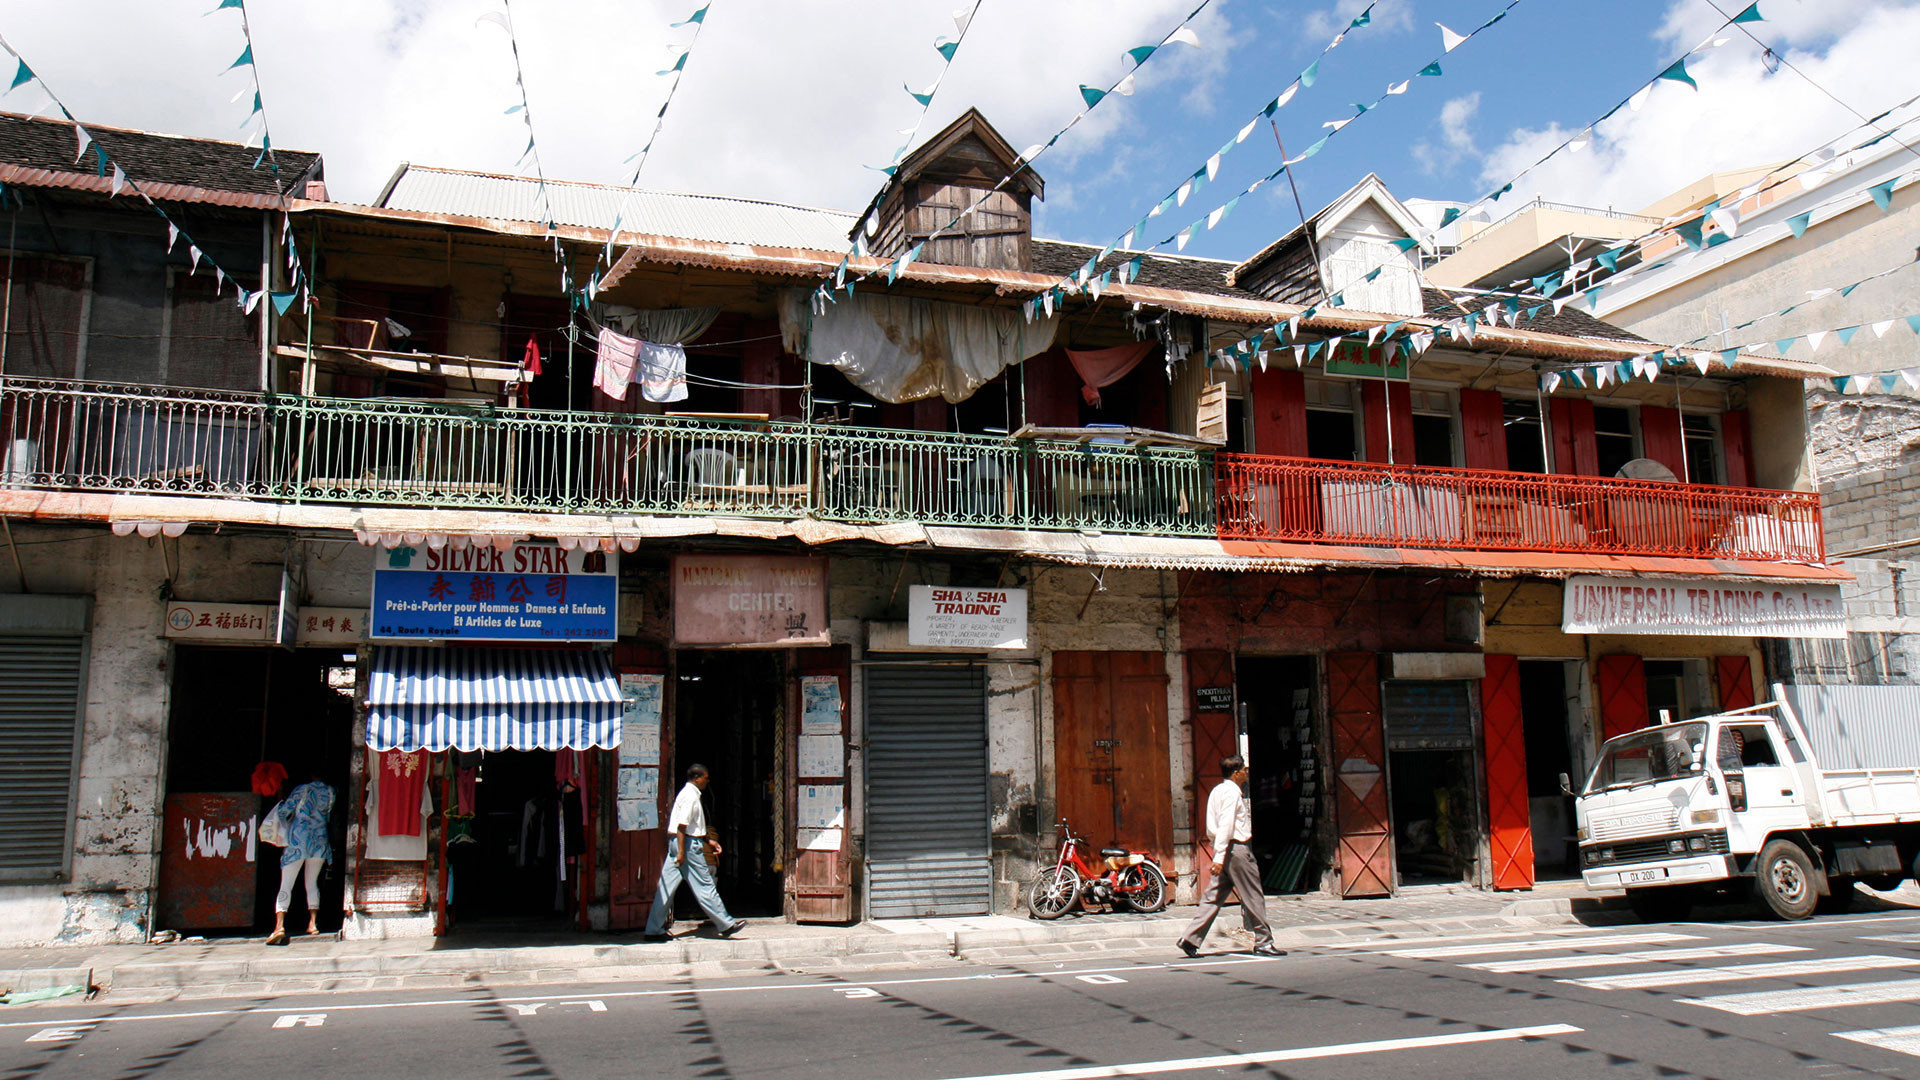 China Town in Port Louis, Mauritius